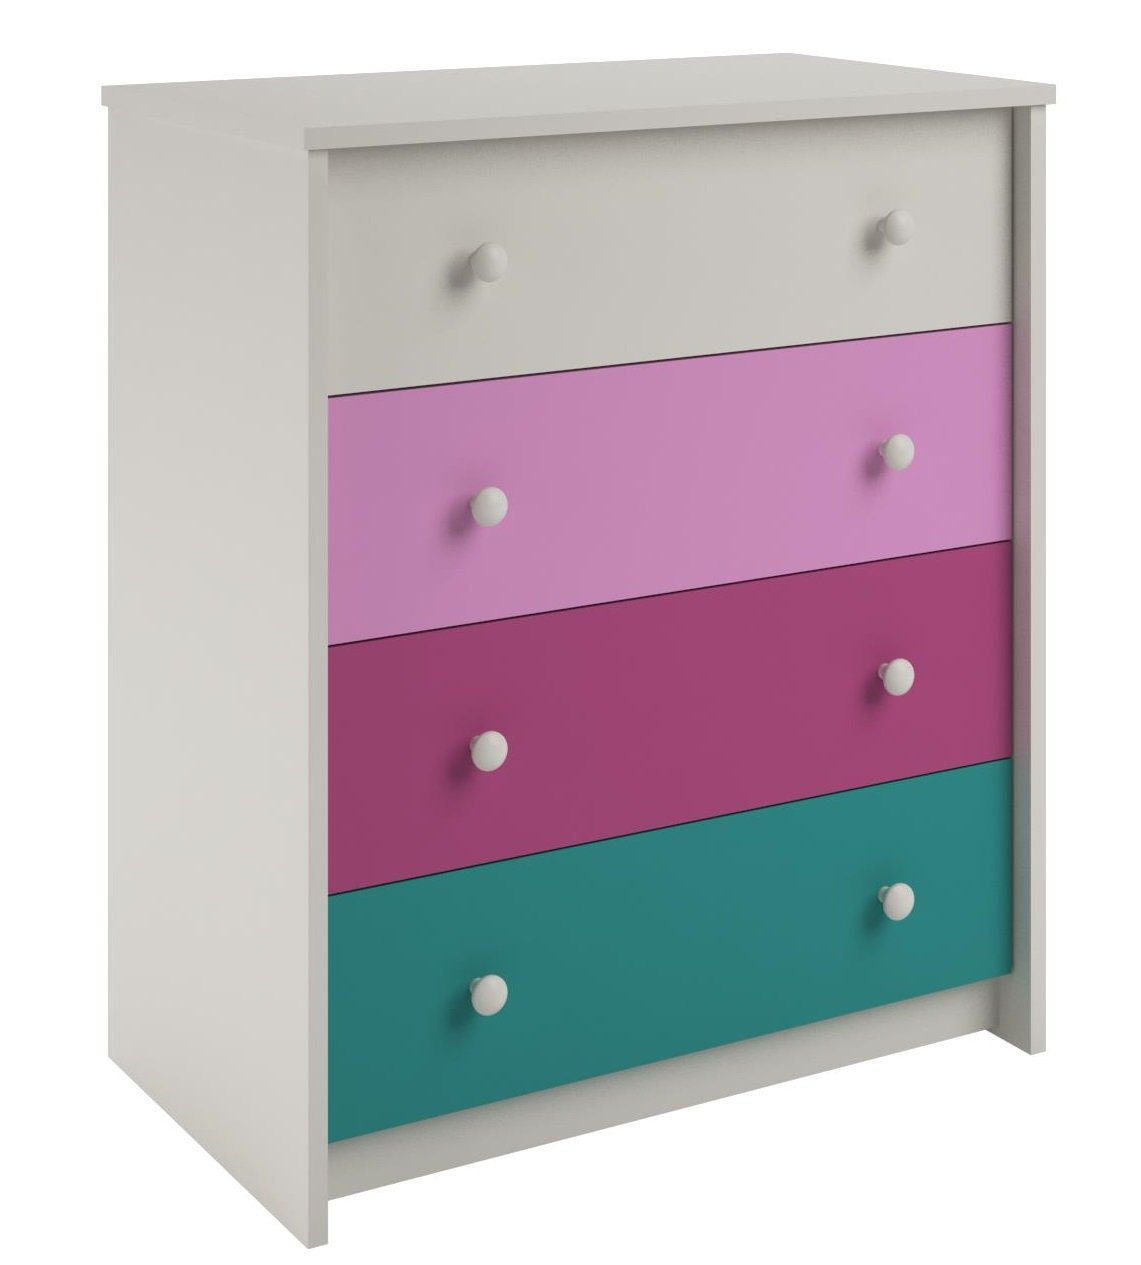 Cosco Kaleidoscope 4-Drawer Bedroom Chest, White/Pink/Raspberry/Blue